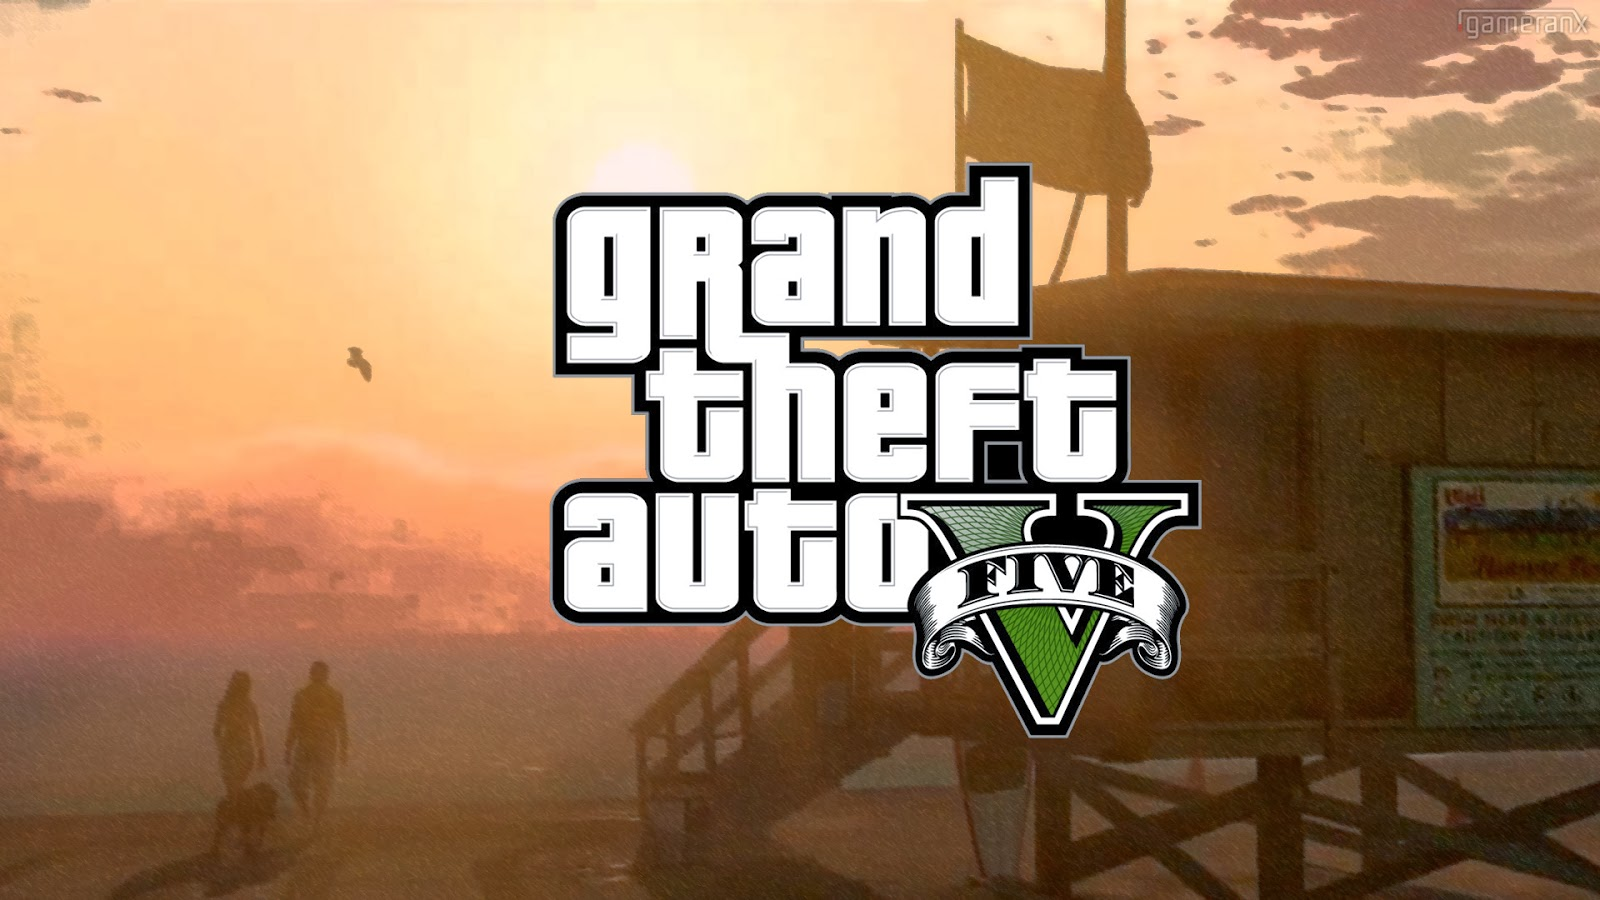 Download Wallpapers Gta5 Night Grand Theft Auto V 4k: Grand Theft Auto V HD 1080p Wallpapers